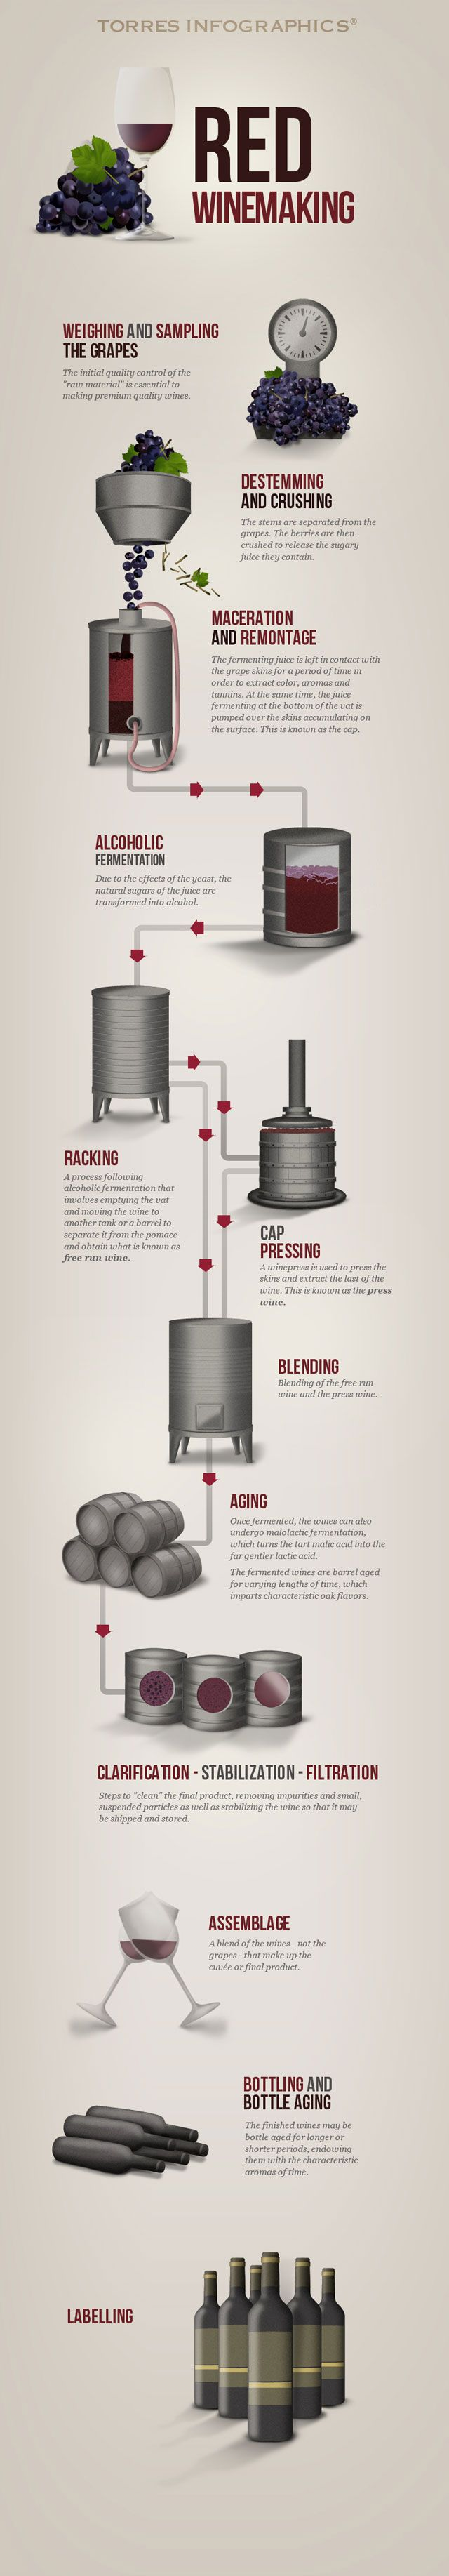 #Infography: How red #wine is made